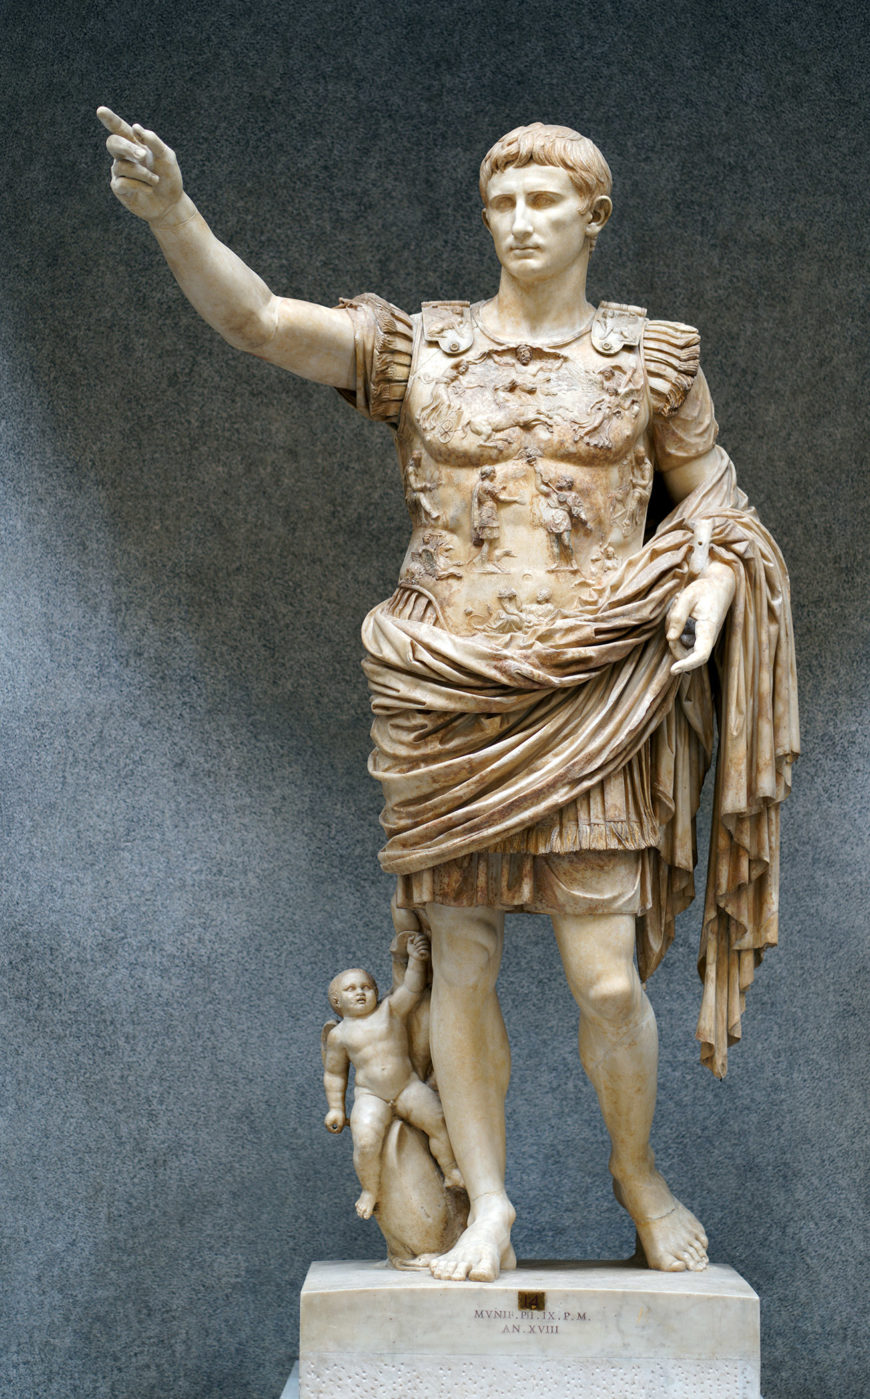 Augustus of Primaporta, 1st century C.E., marble, 2.03 meters high (Vatican Museums) (photo: Steven Zucker, CC BY-NC-SA 2.0)